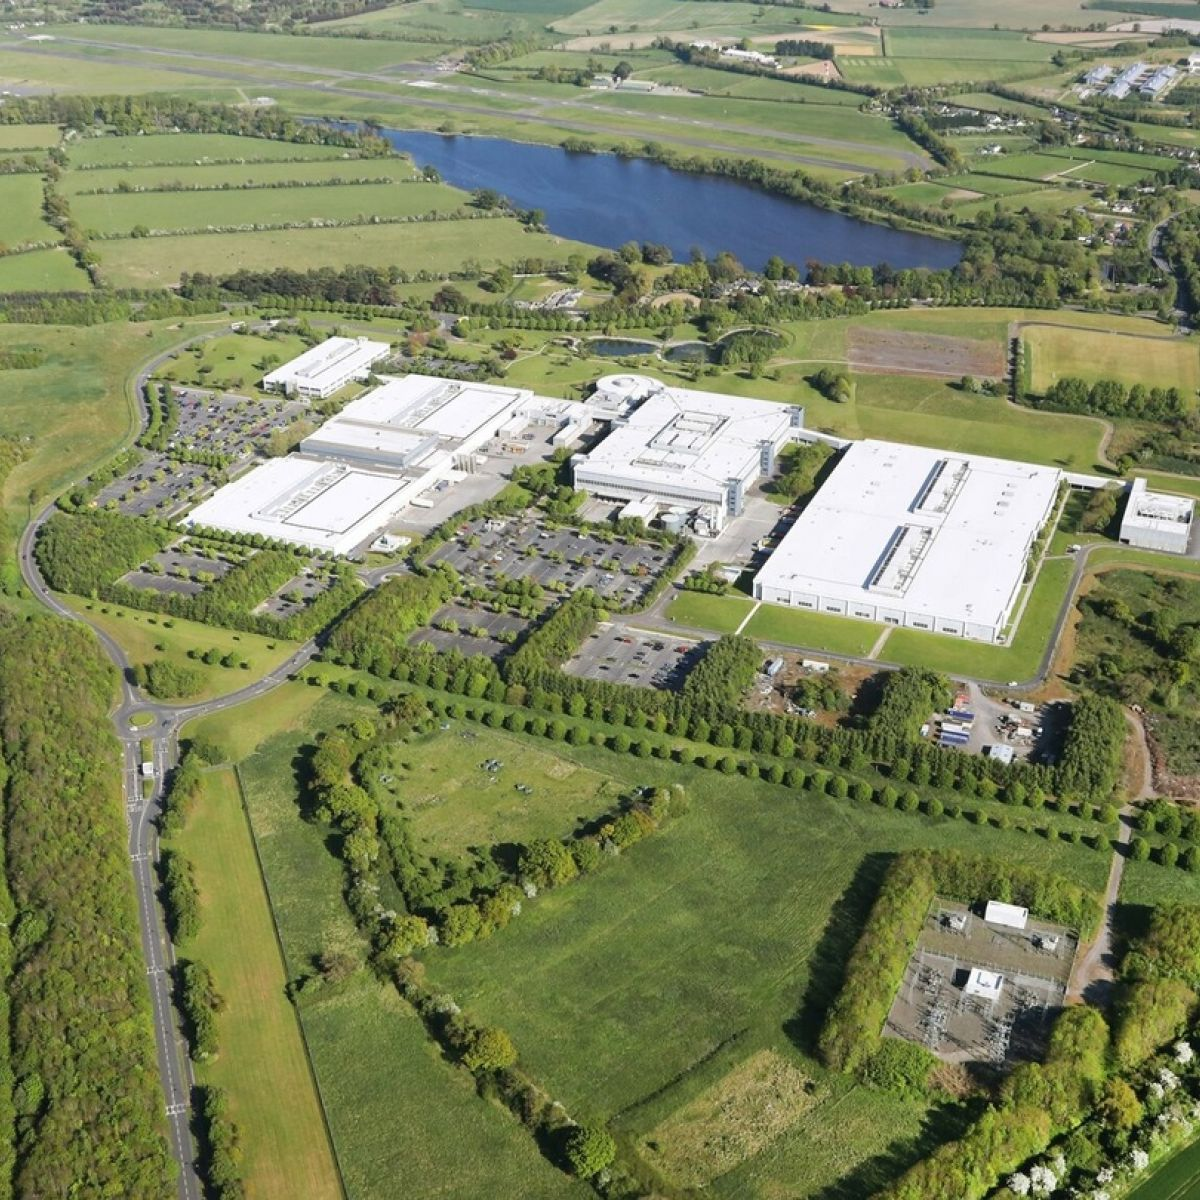 How Intel turned Leixlip into Silicon Liffey Valley